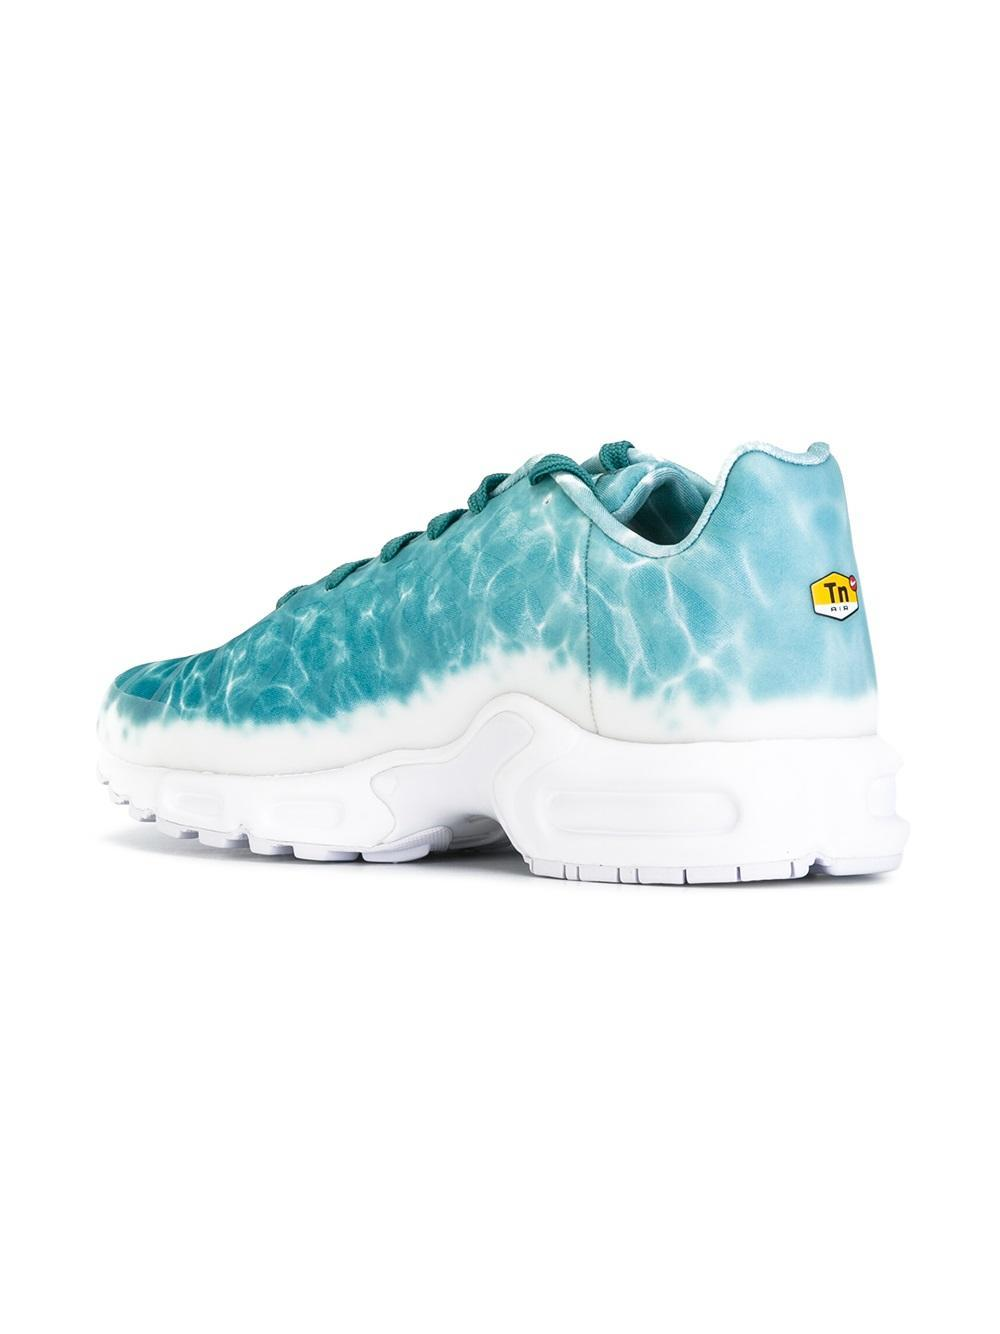 finest selection fdd44 96ff3 Nike Blue Air Max Plus Gpx Premium Swimming Pool Sneakers for men